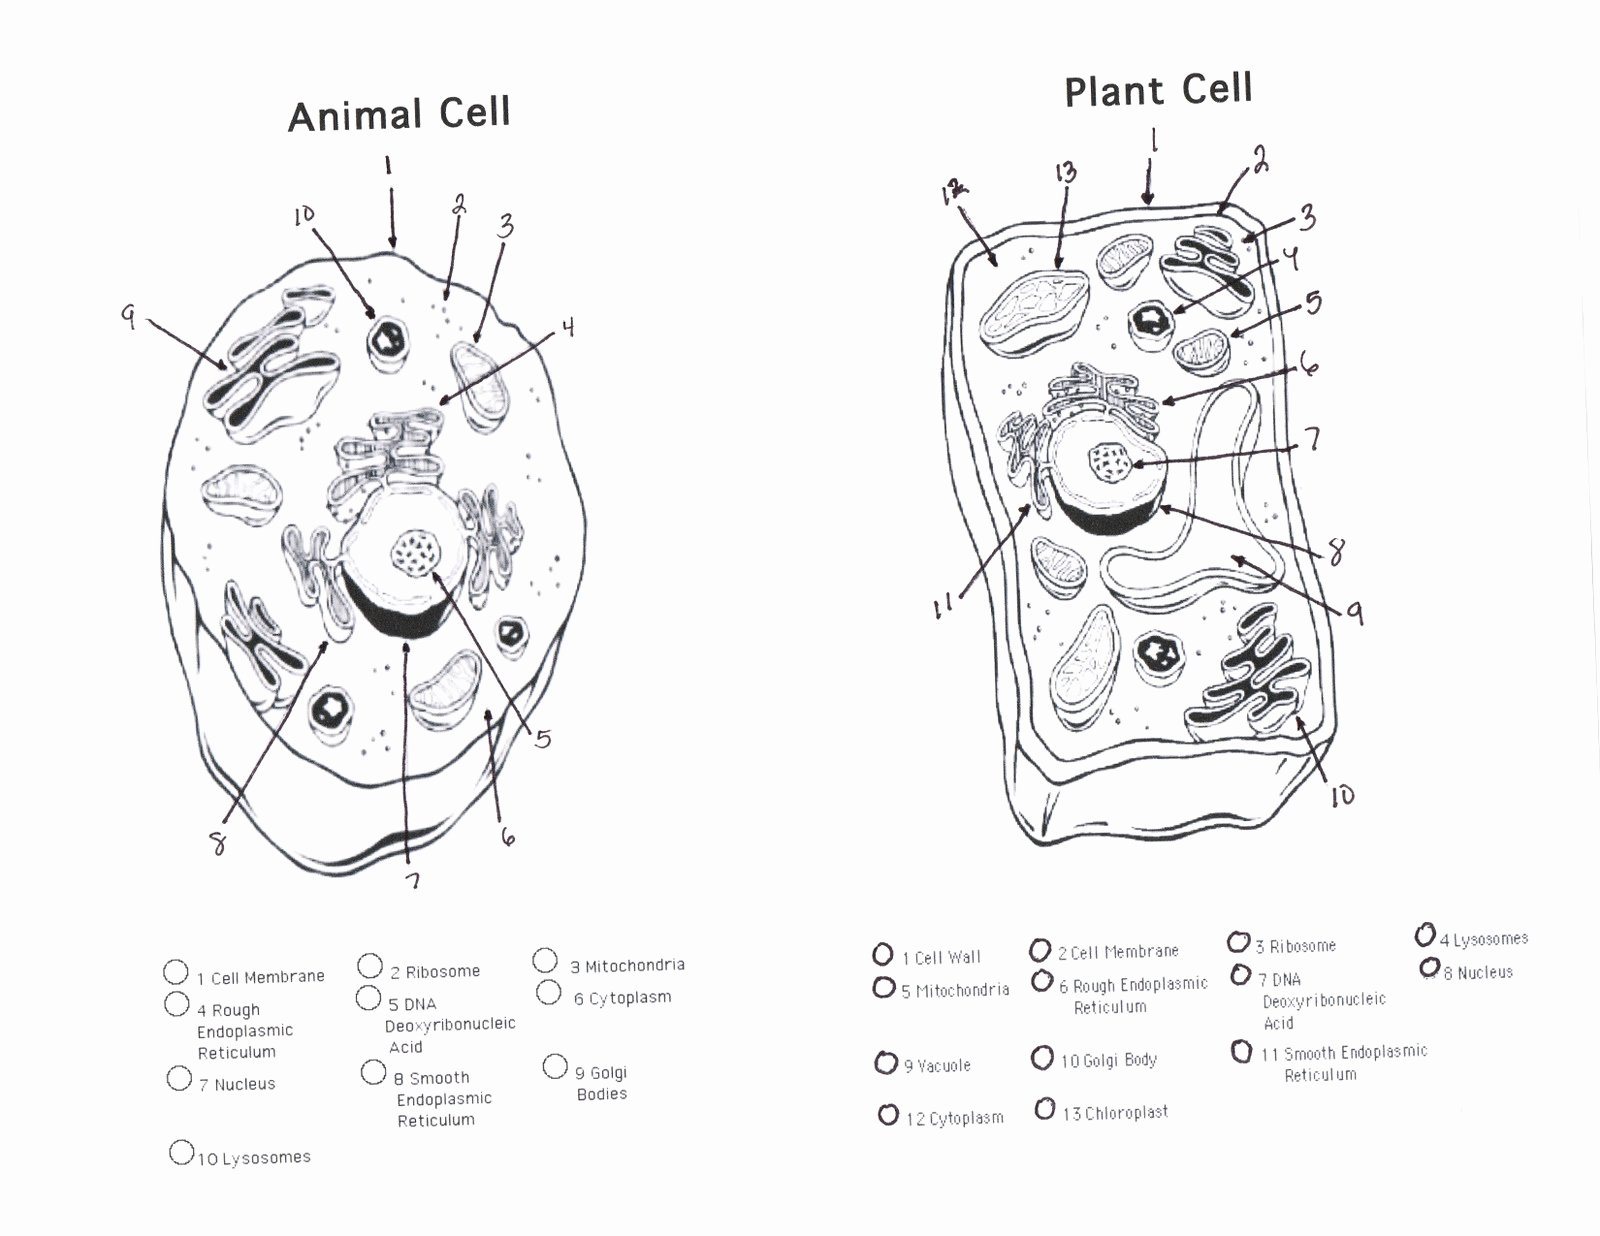 Animal Cells Coloring Worksheet Unique Parts Plants Coloring Pages Free Coloring Pages